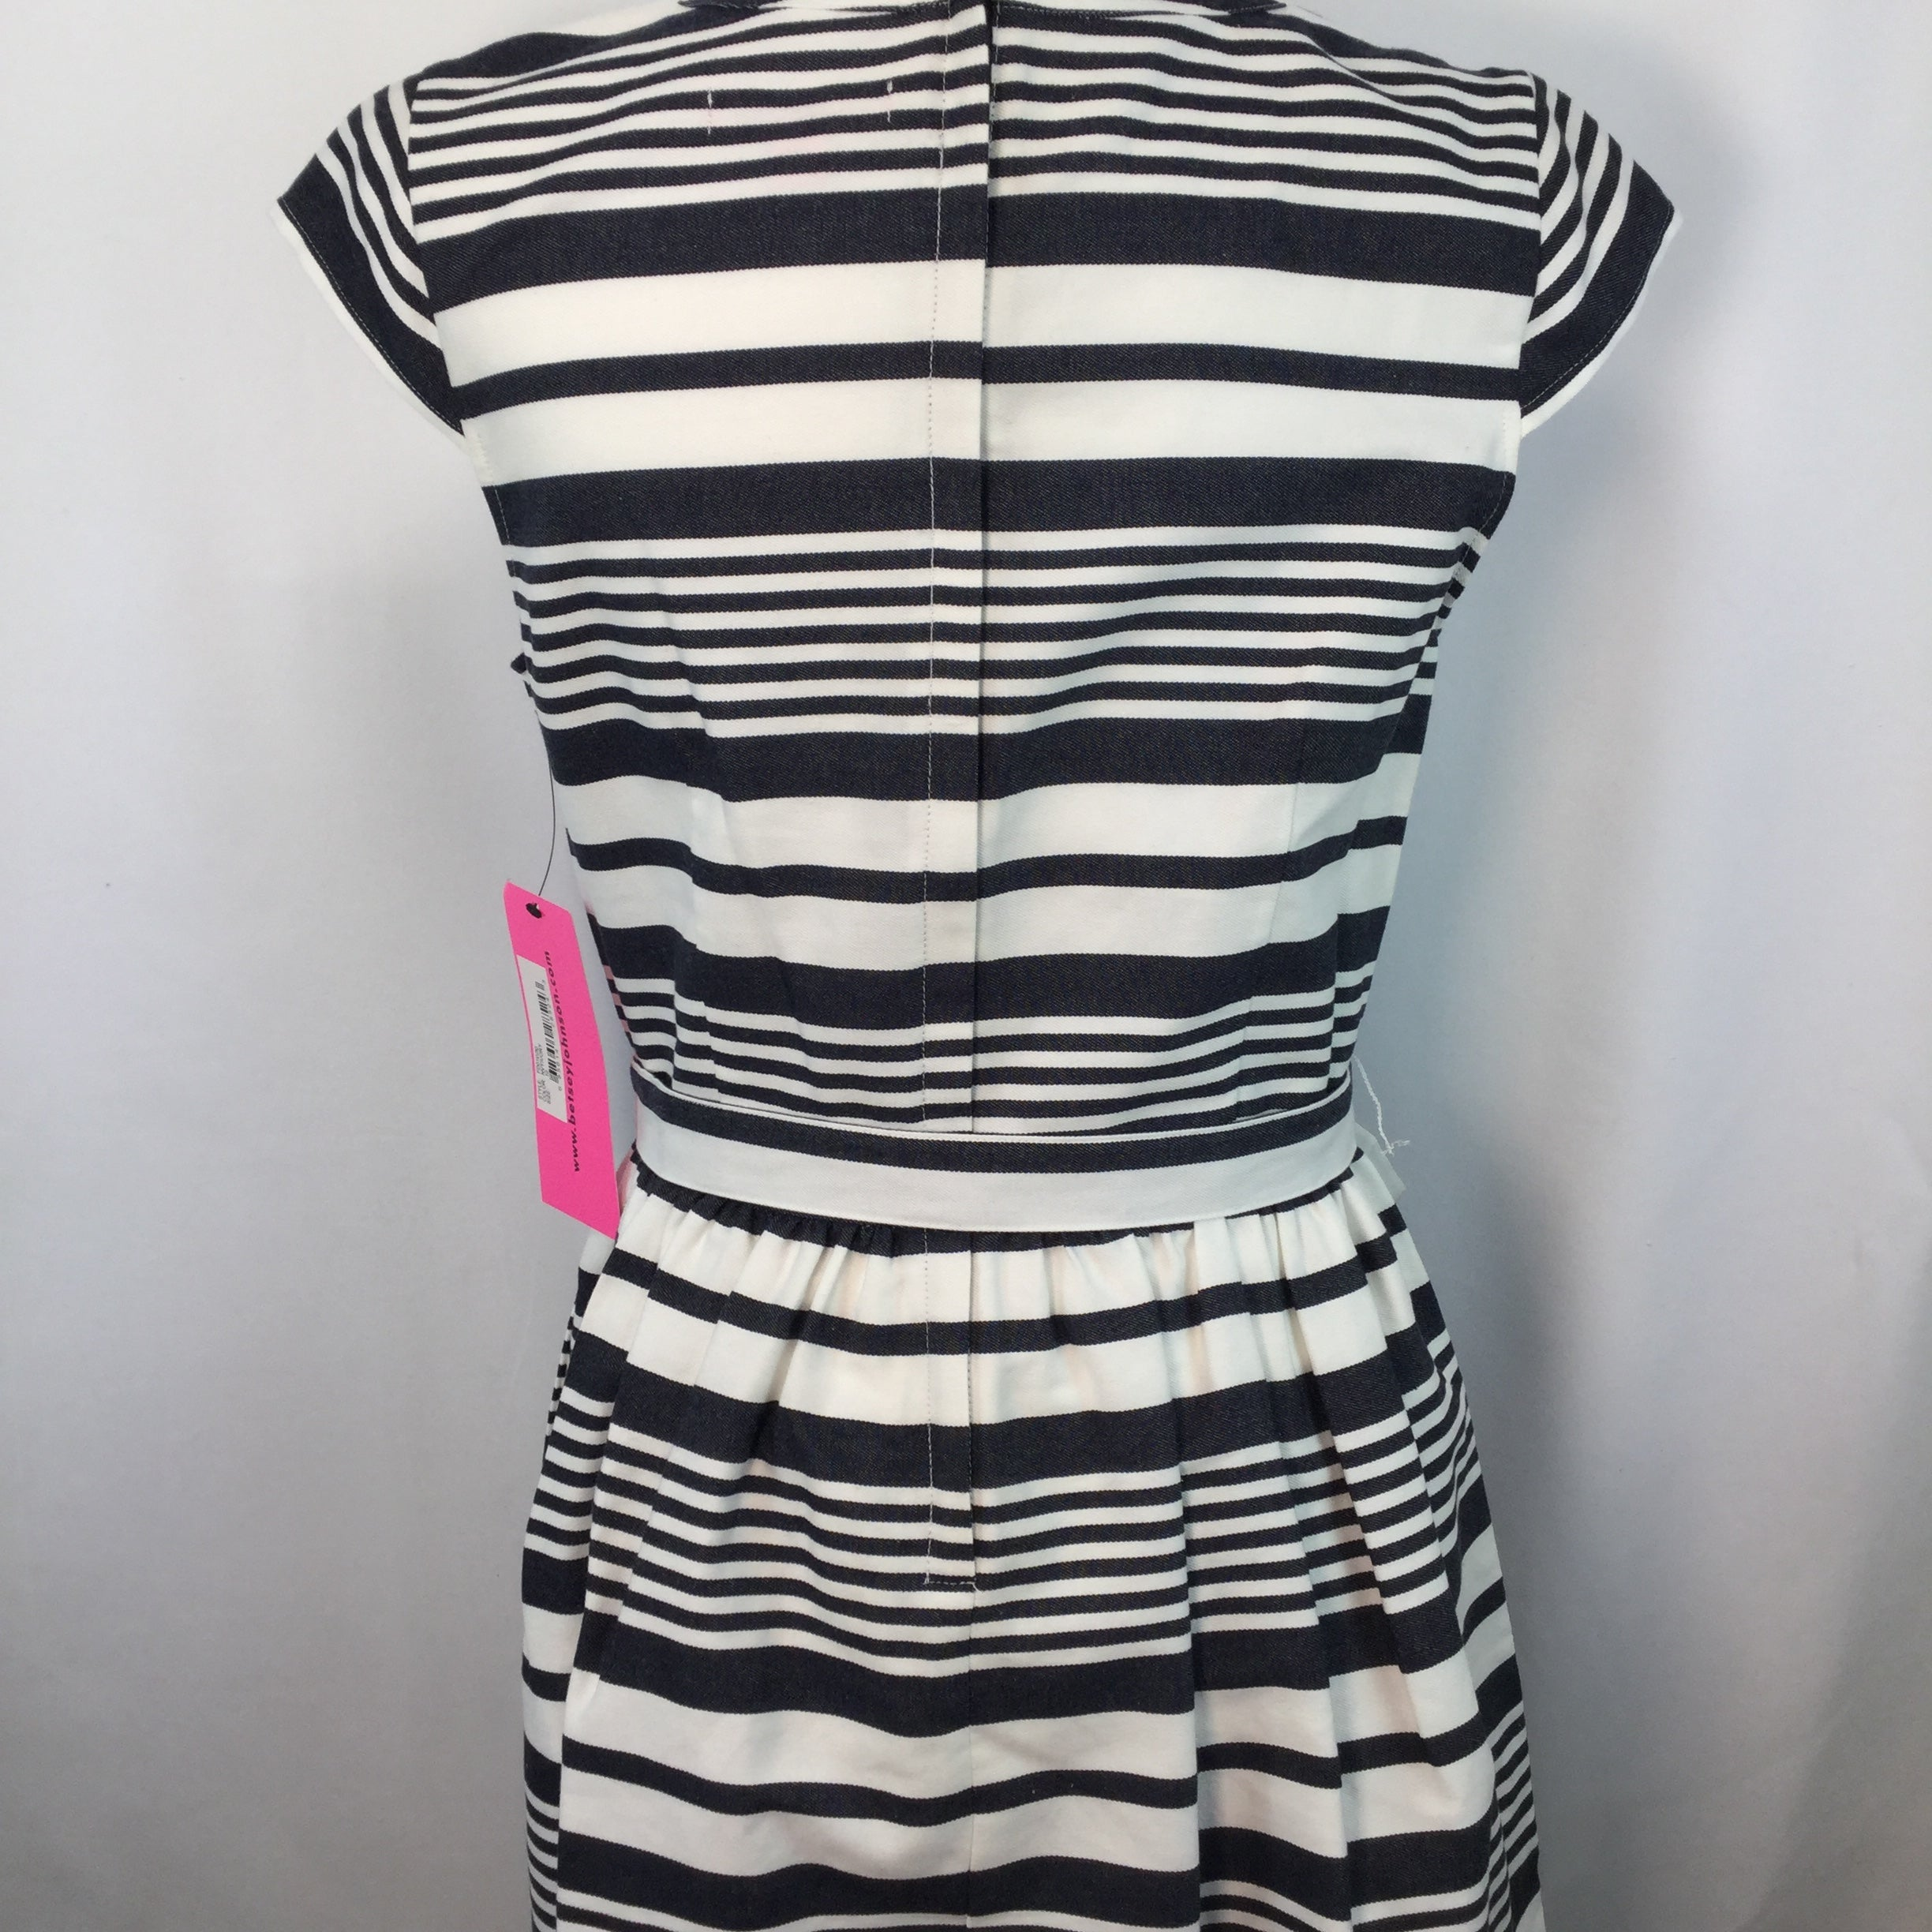 APPAREL,DRESSWEAR - WHITE WITH BLUE STRIPES, TIE WAIST, ZIP BACK, WITH POCKETS!